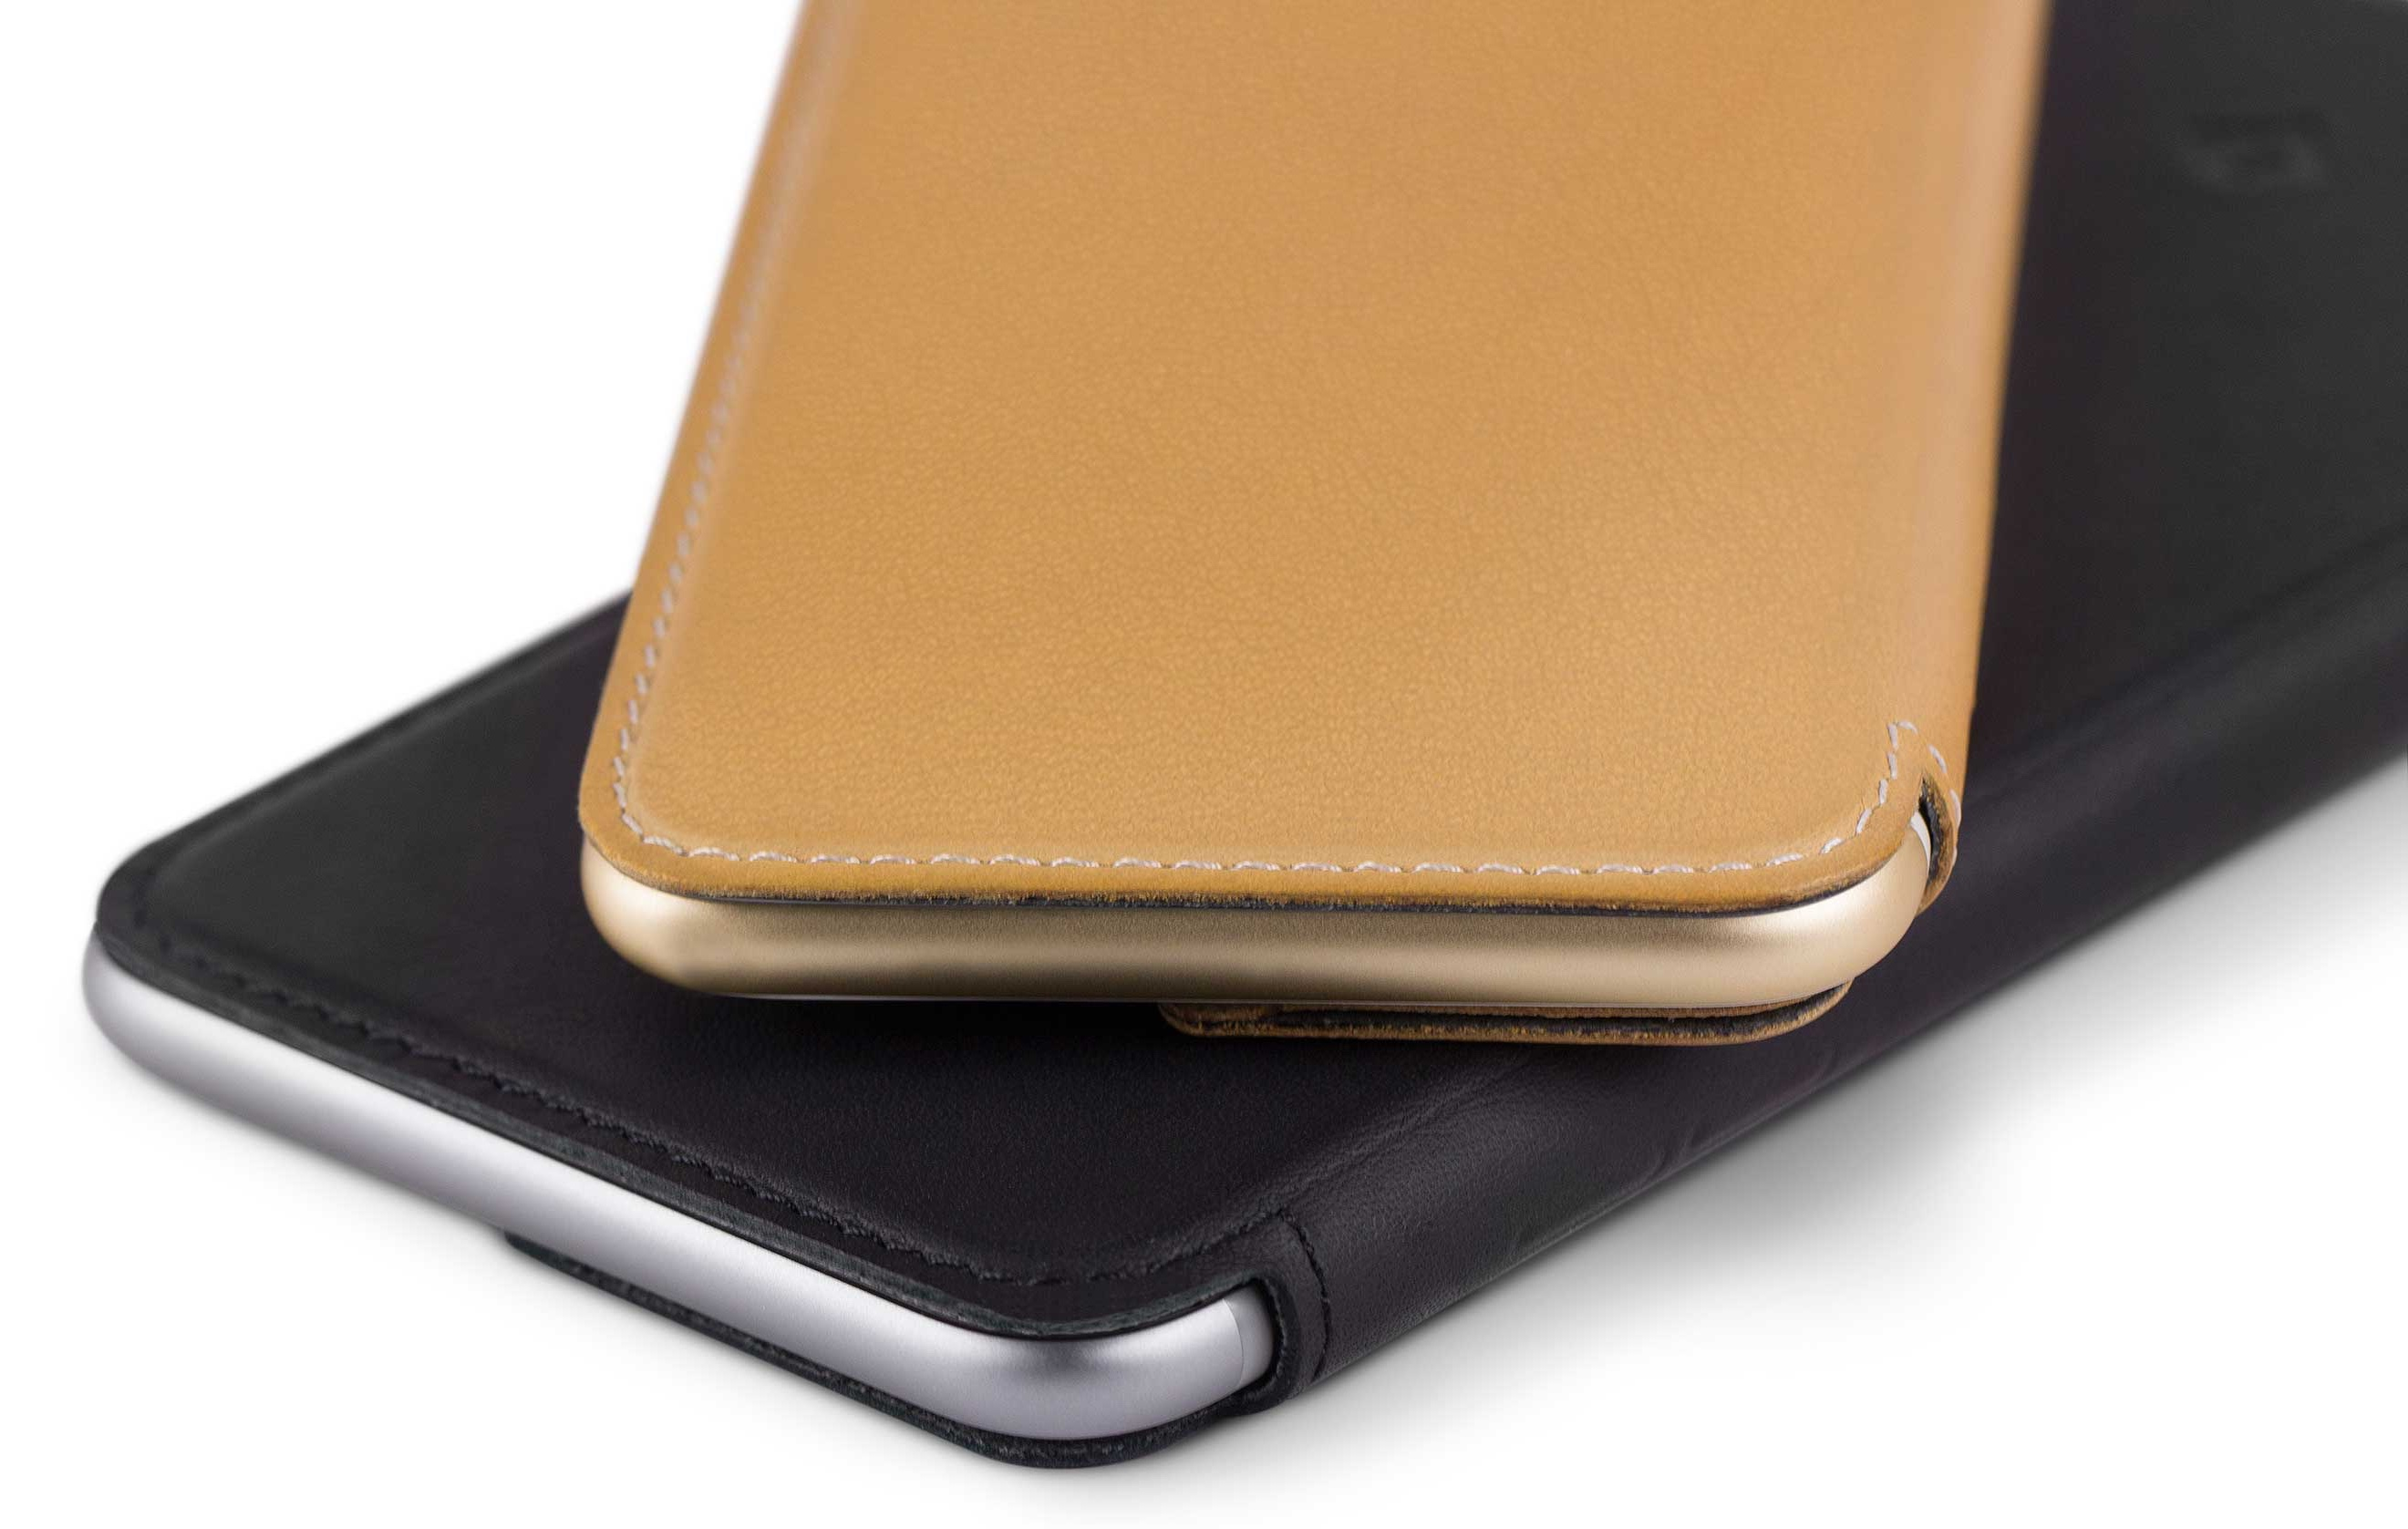 Twelve South SurfacePad for iPhone 6 (image 001)